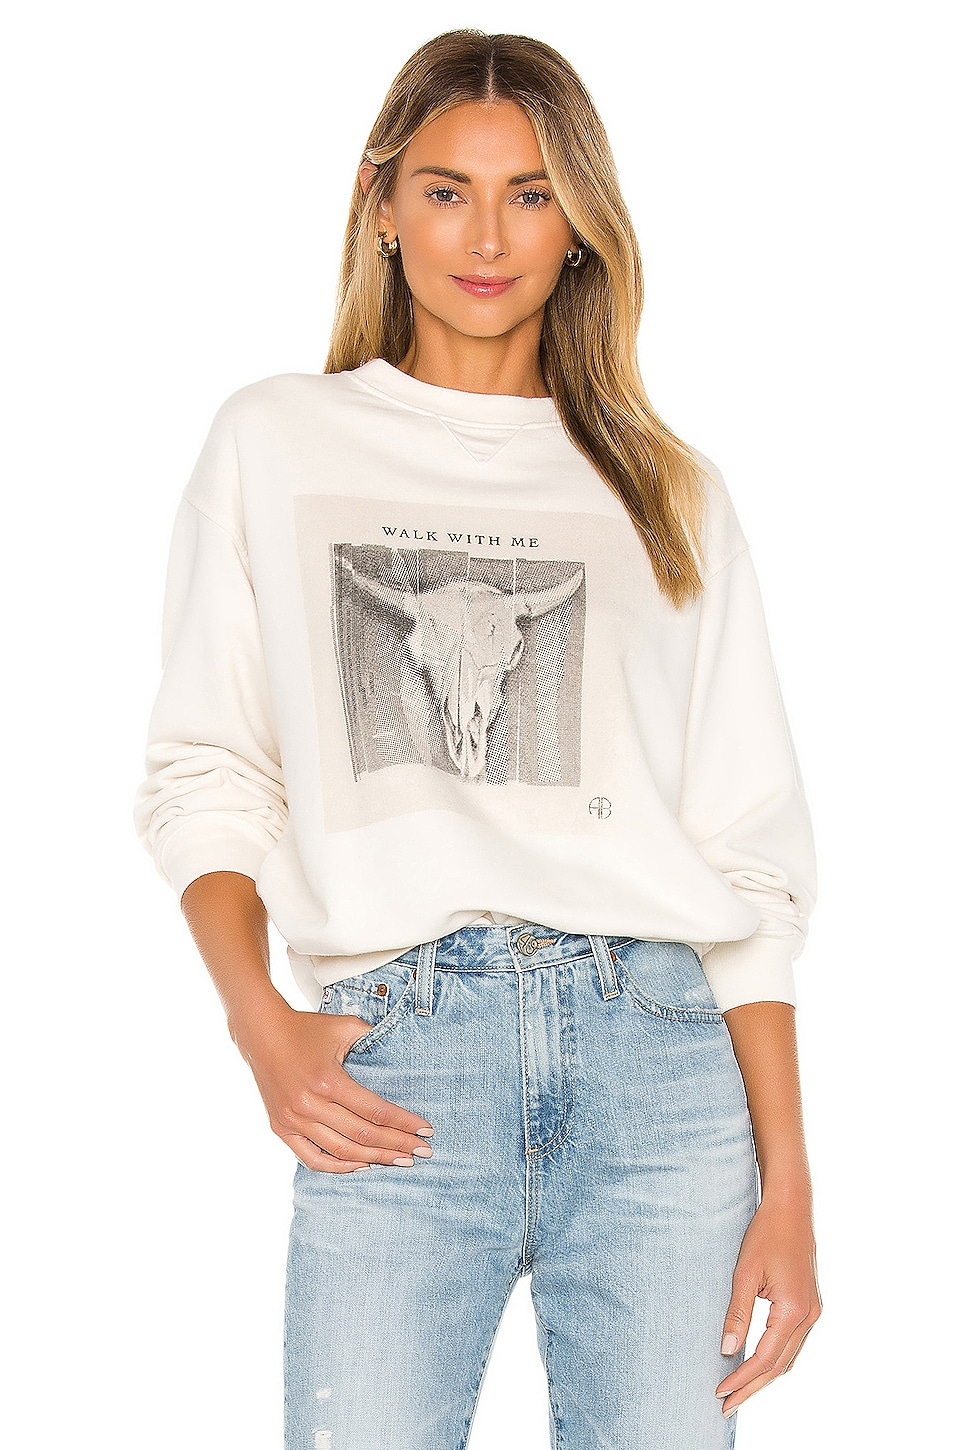 Ramona Walk With Me Sweatshirt             ANINE BING                                                                                                       CA$ 224.71 10